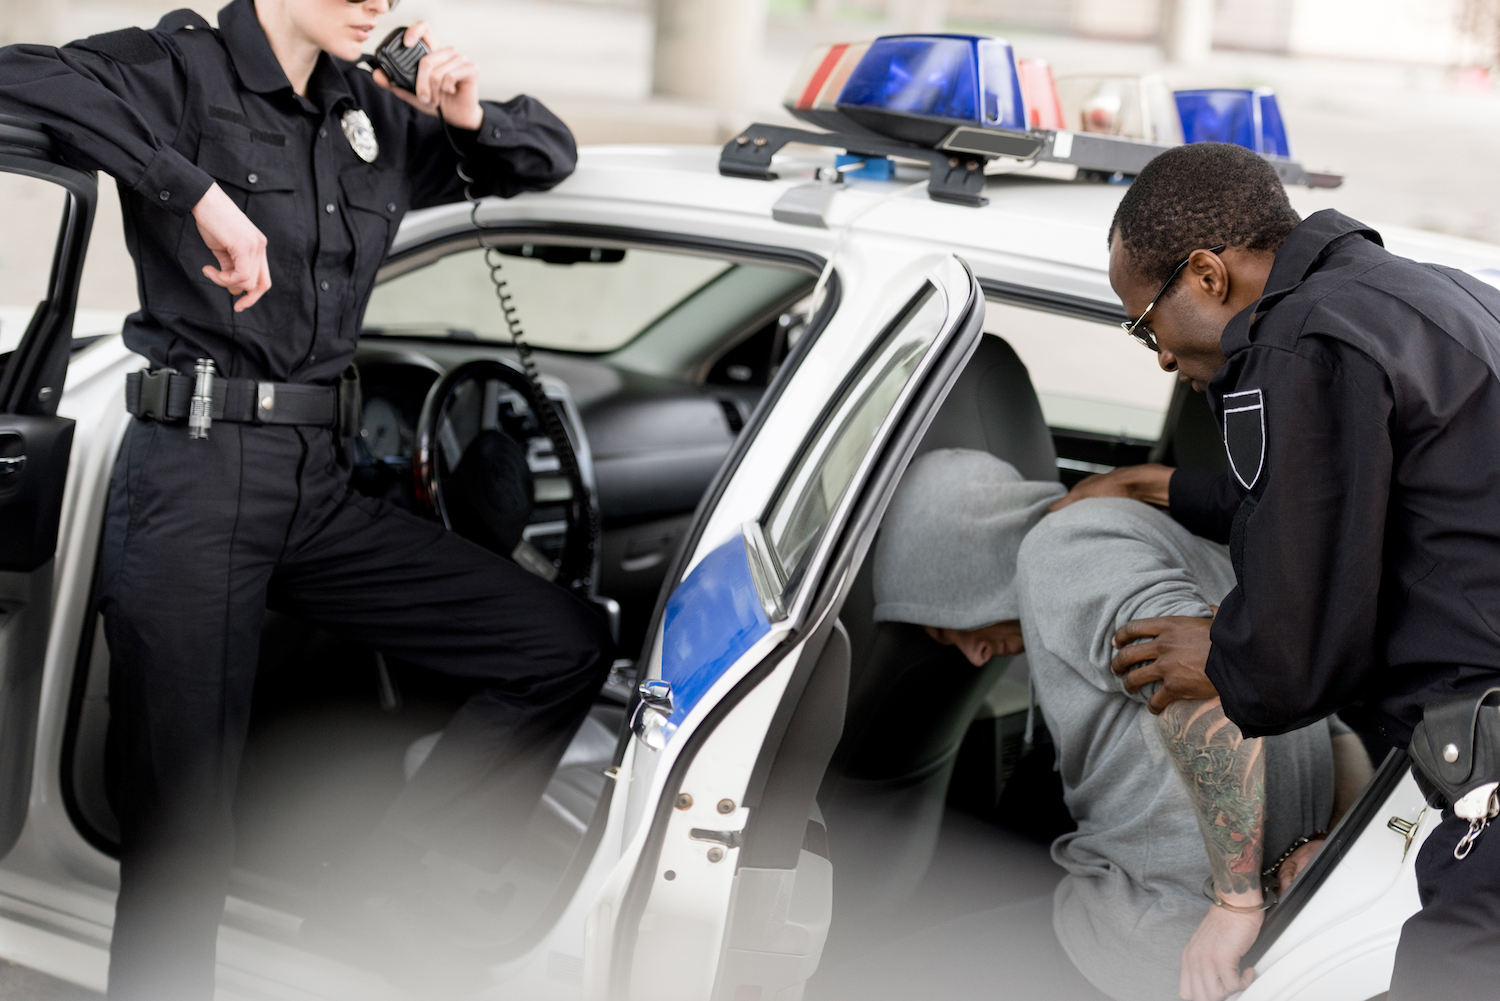 woman and man cop put a man they arrested in Fort Lauderdale in the back of their car under arrest